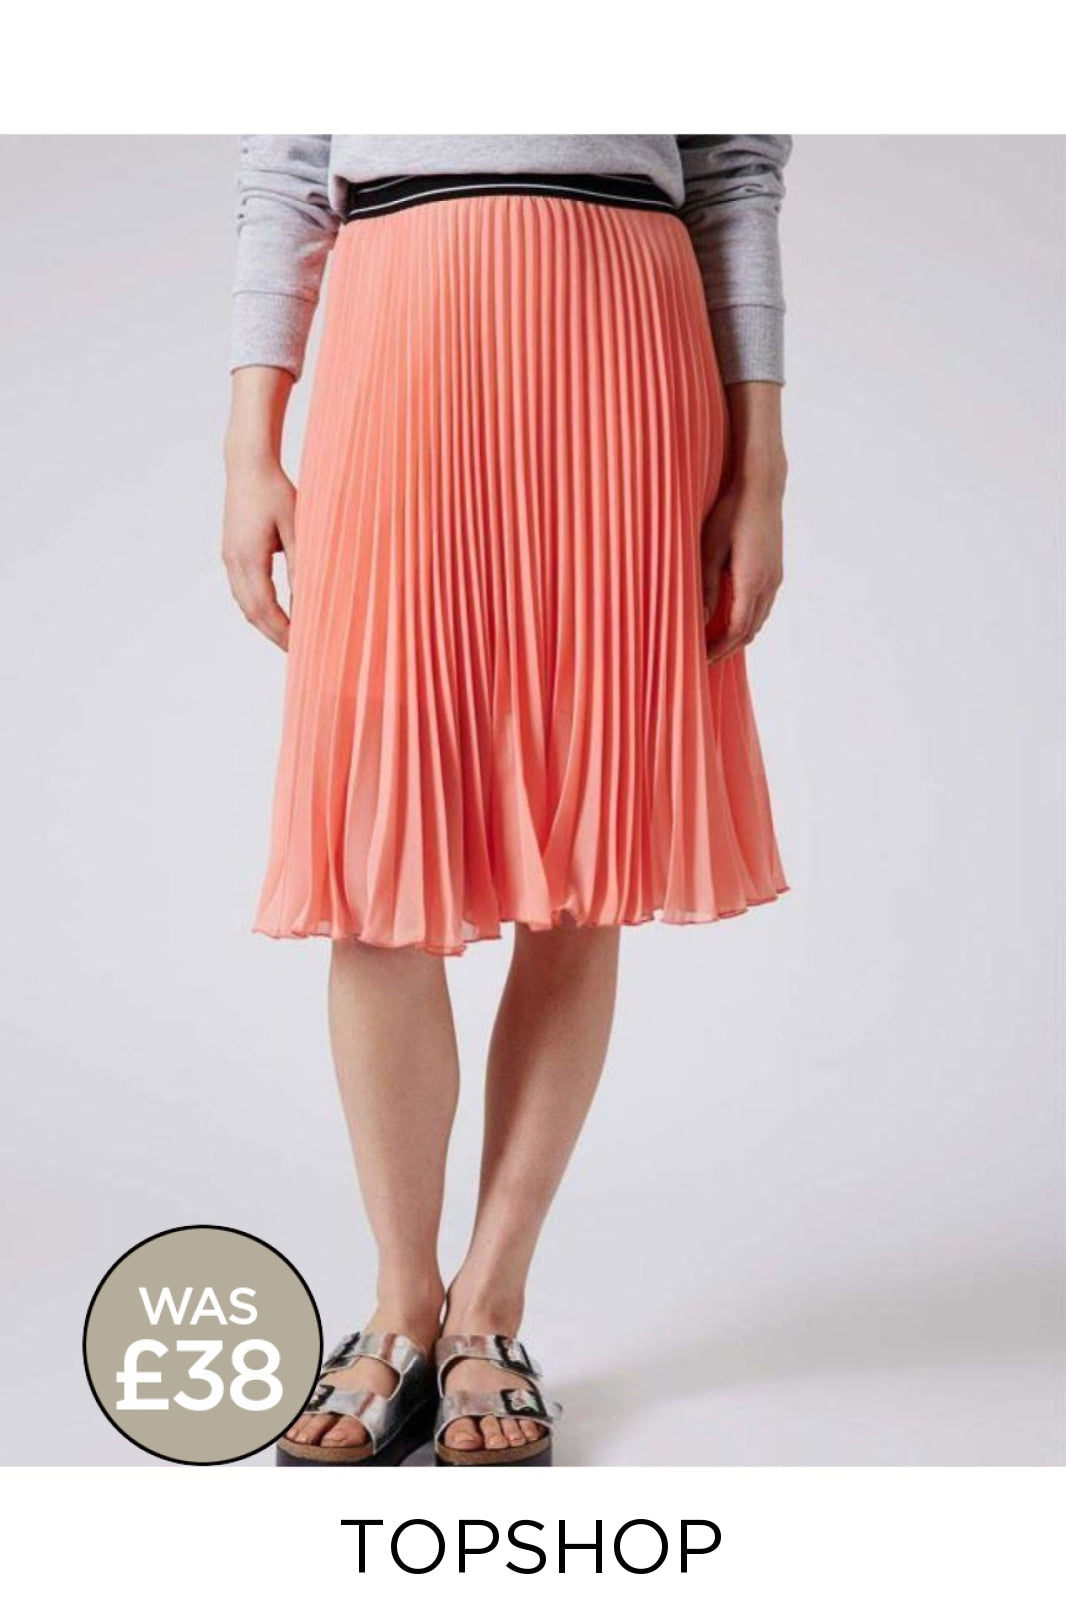 Topshop Ex Topshop Pleated Floaty Summer Skirt | 4 / Peach Secret Label